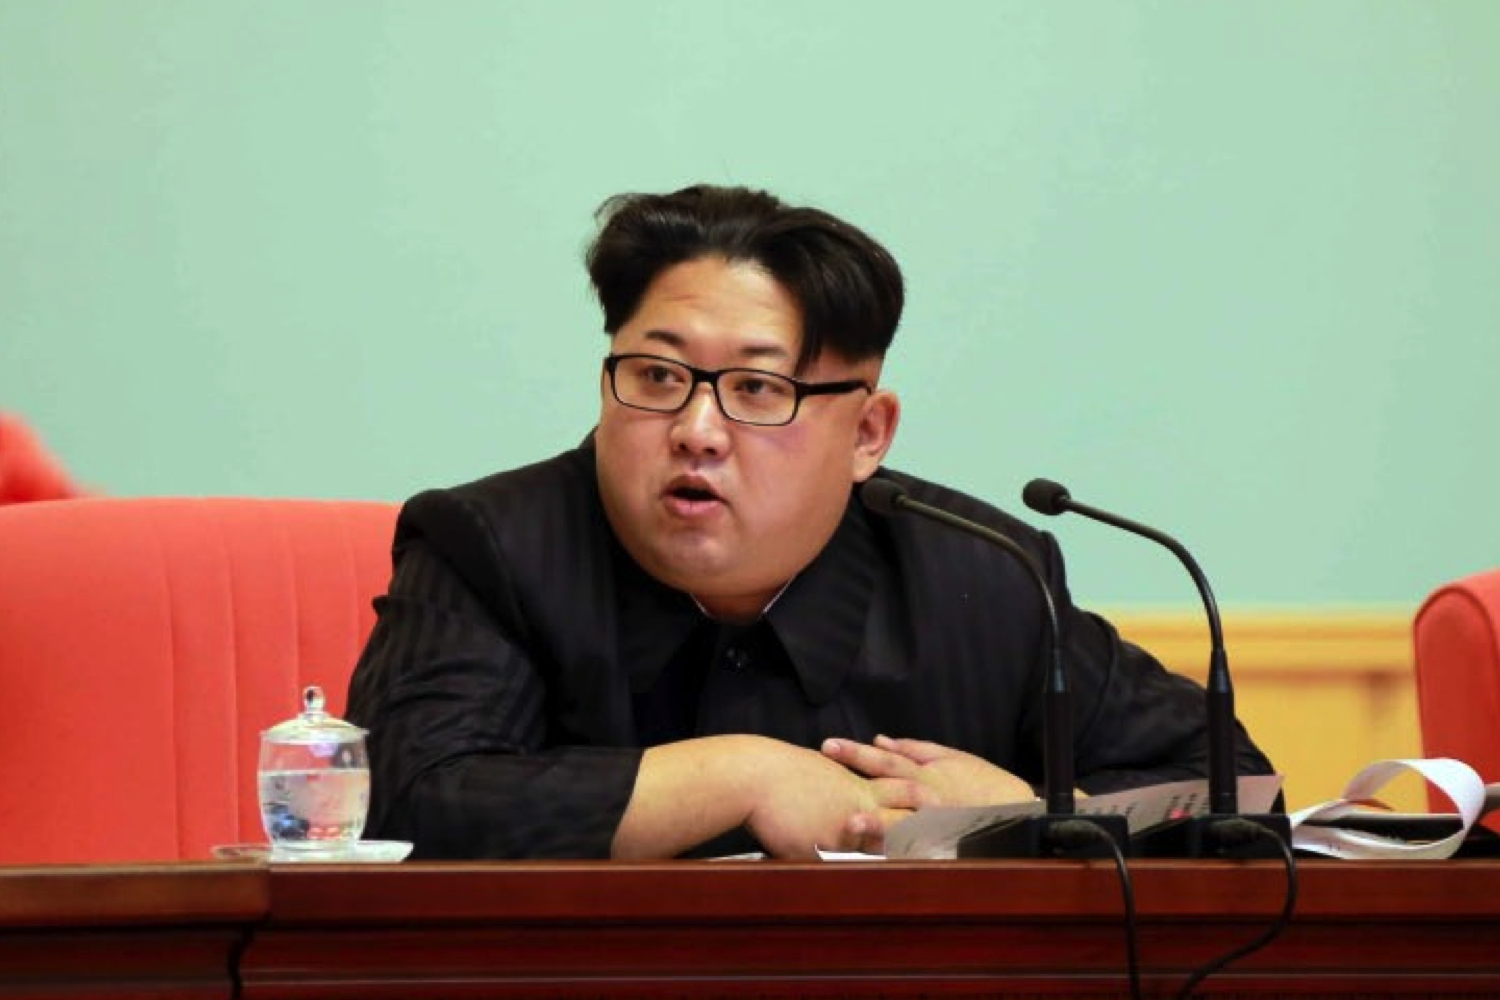 Kim Jong Un speaks at a joint expanded meeting of the WPK Central Committee and KPA WPK Committee at the April 25 House of Culture in Pyongyang (Photo: Rodong Sinmun).